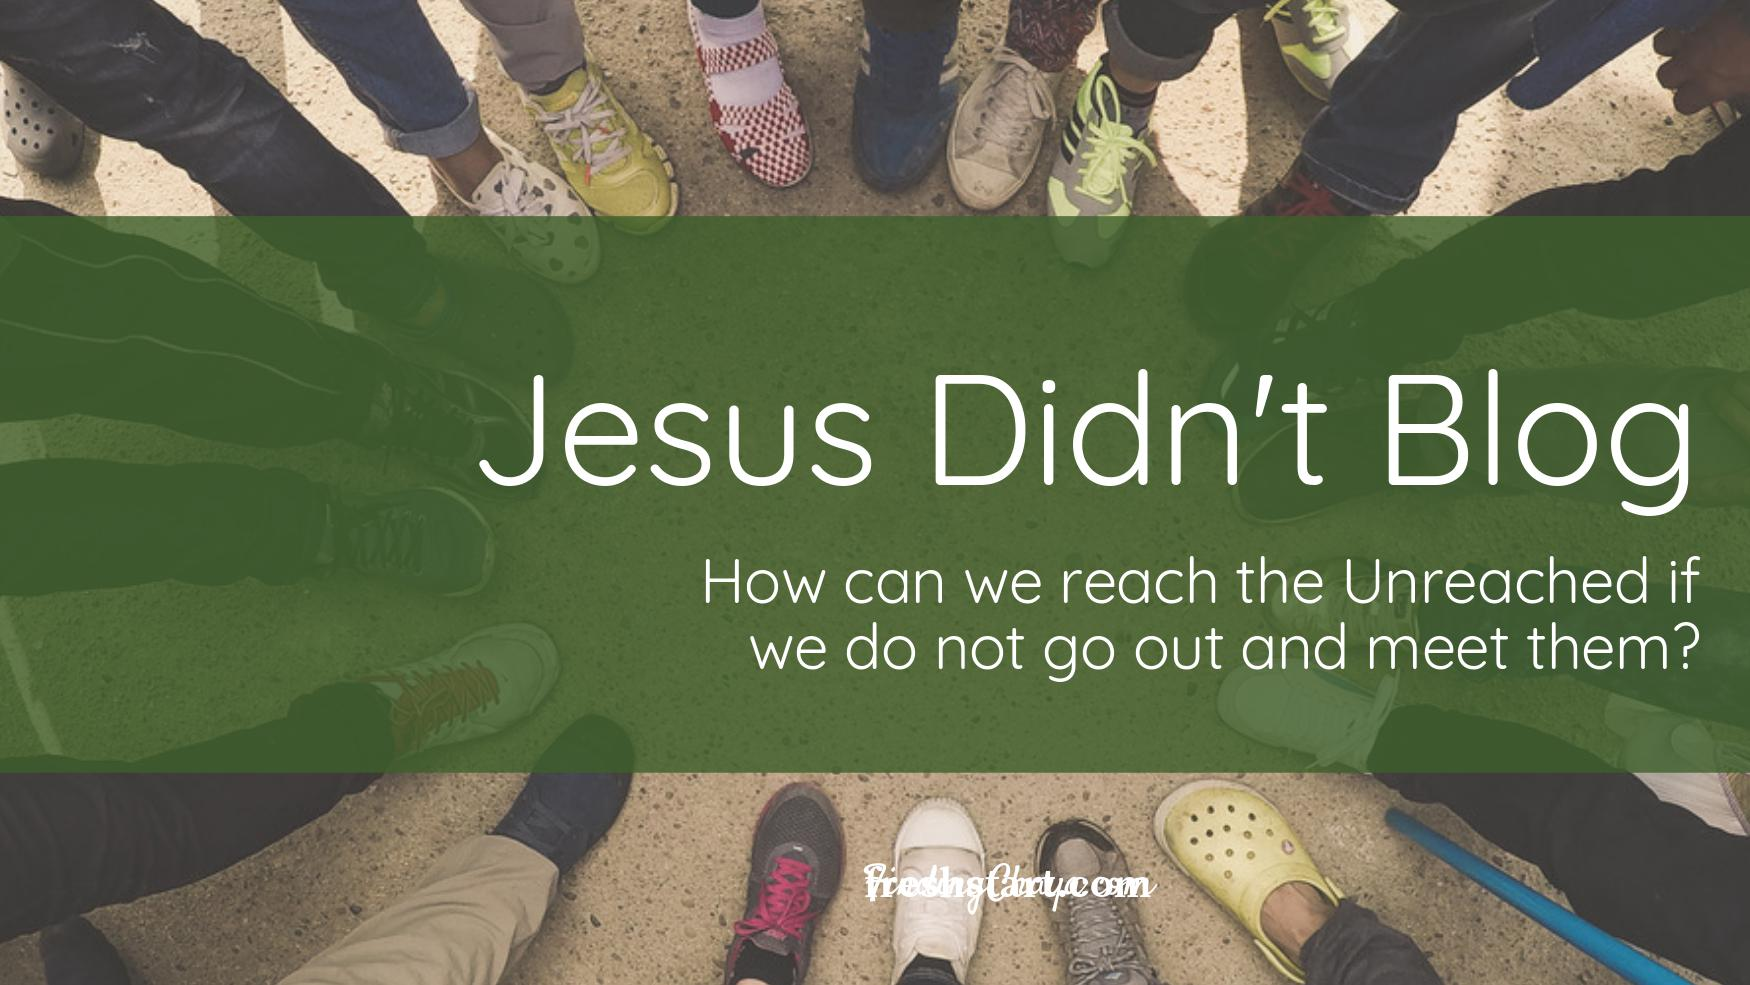 Jesus Didn't Blog || How can We Reach the Unreached if We do not Go Out and Meet Them?